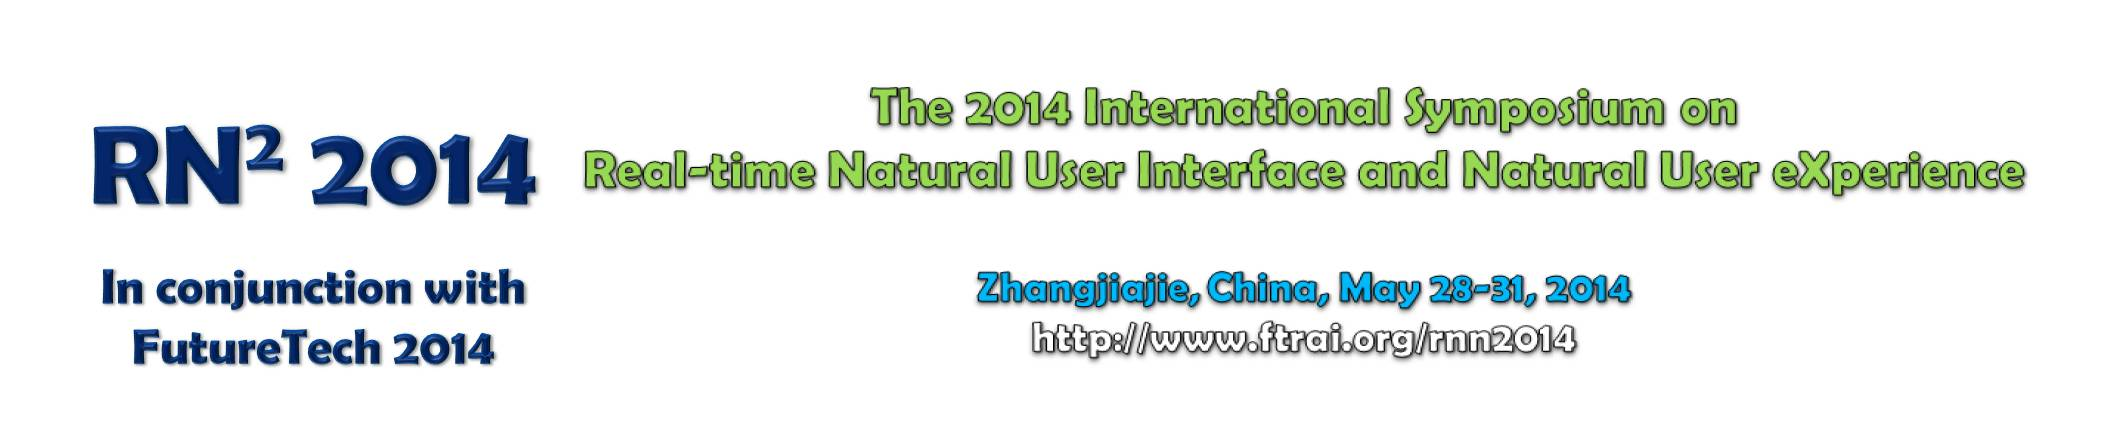 International Symposium on Real-time Natural User Interface and Natural User eXperience